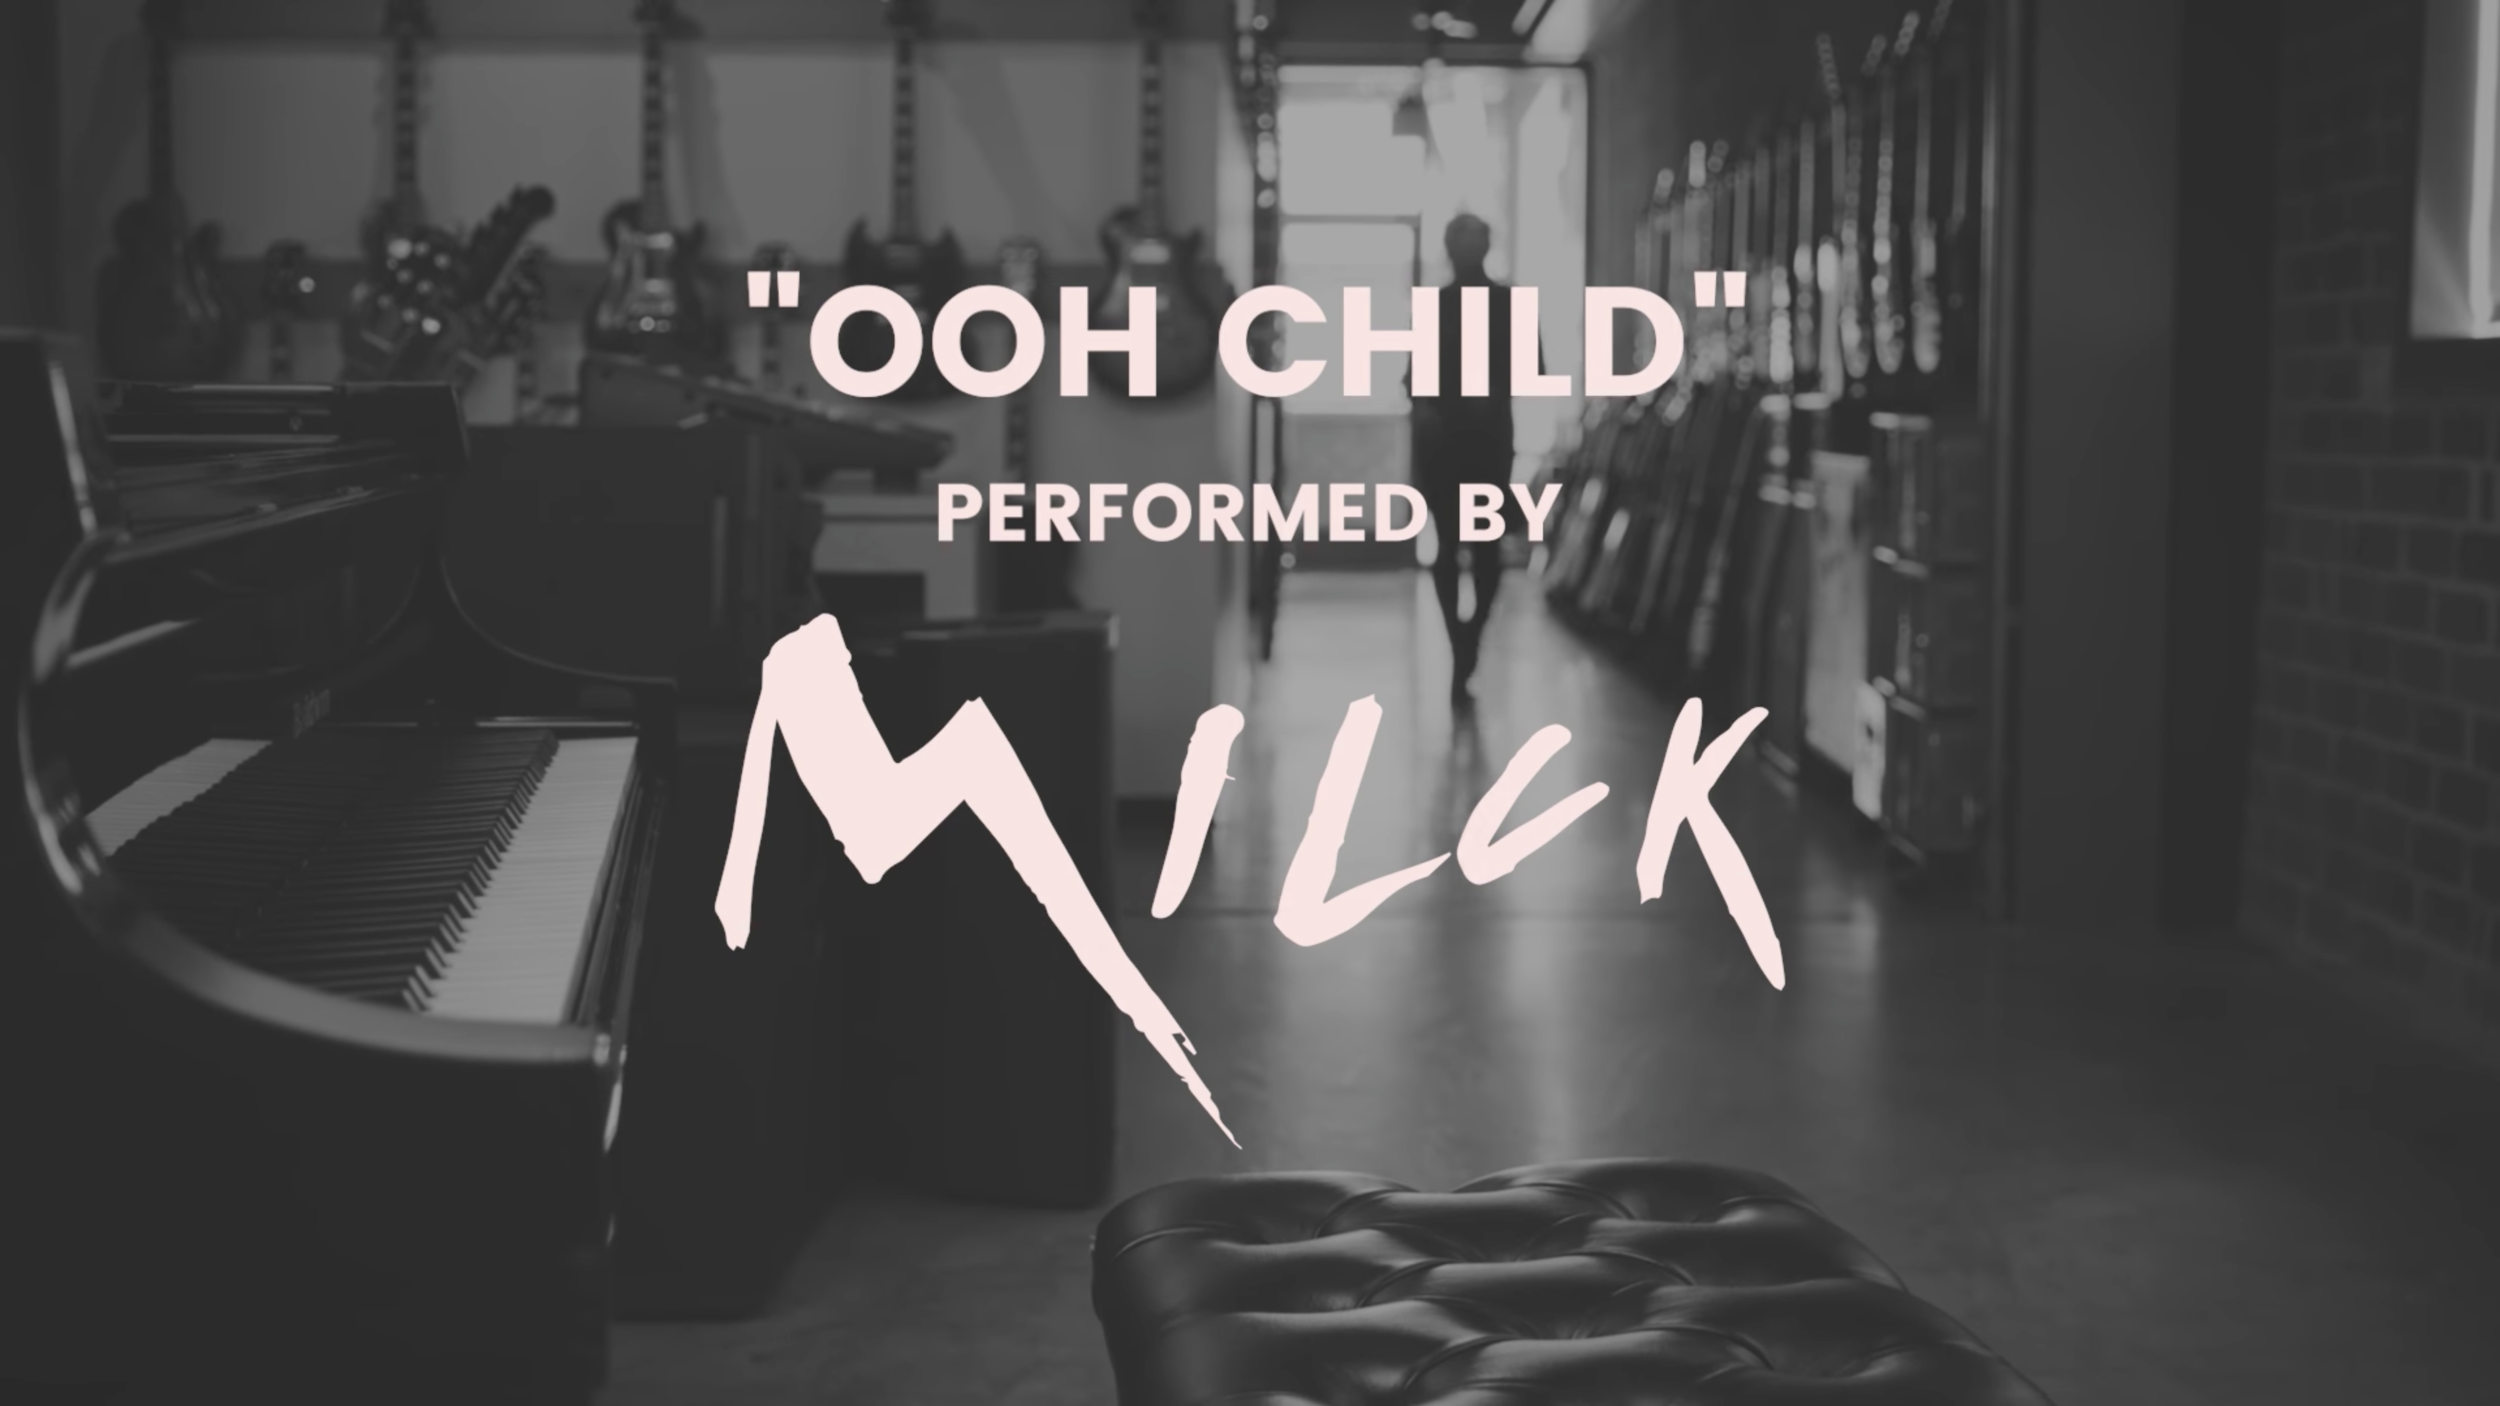 MILCK Ooh Child DP Director Photography Cinematographer Music Video Fashion Film Advertising Commercial LA 16mm 35mm